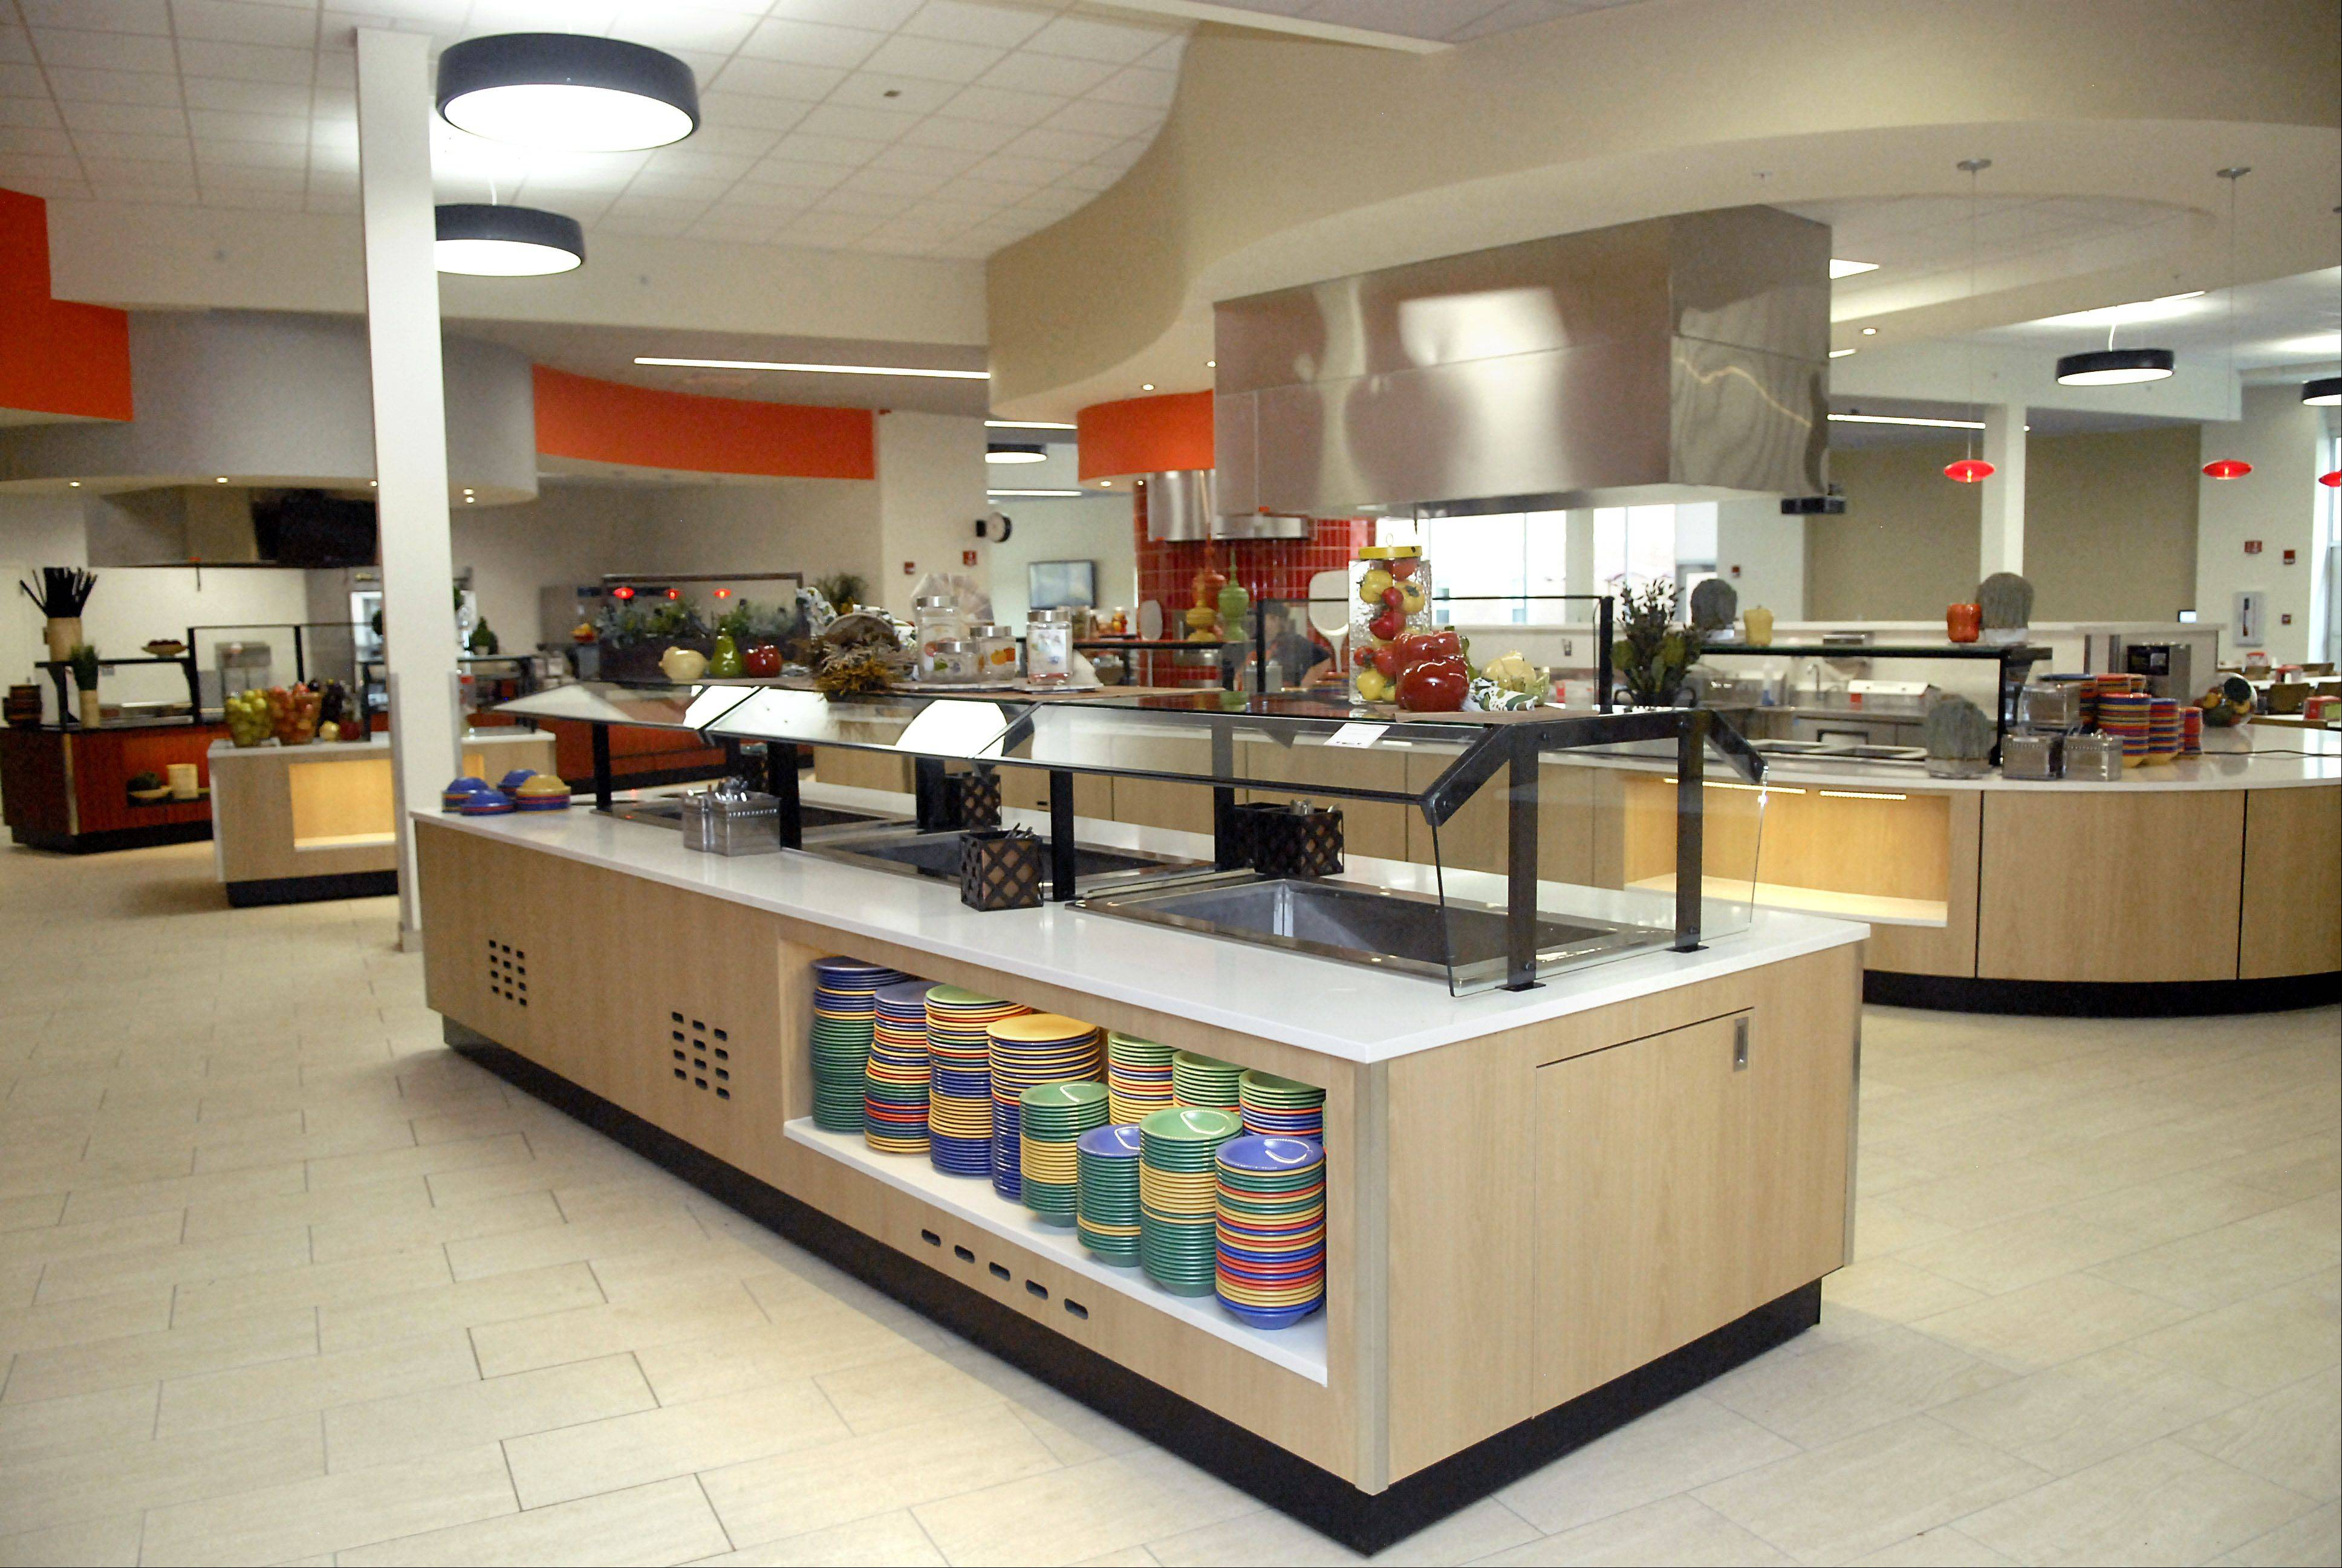 The cafeteria at the New Residence Hall Community Center at Northern Illinois University in DeKalb on Thursday, August 23. There are several different food stations, including a salad bar, fried foods, mongolian food, and a pizza oven.